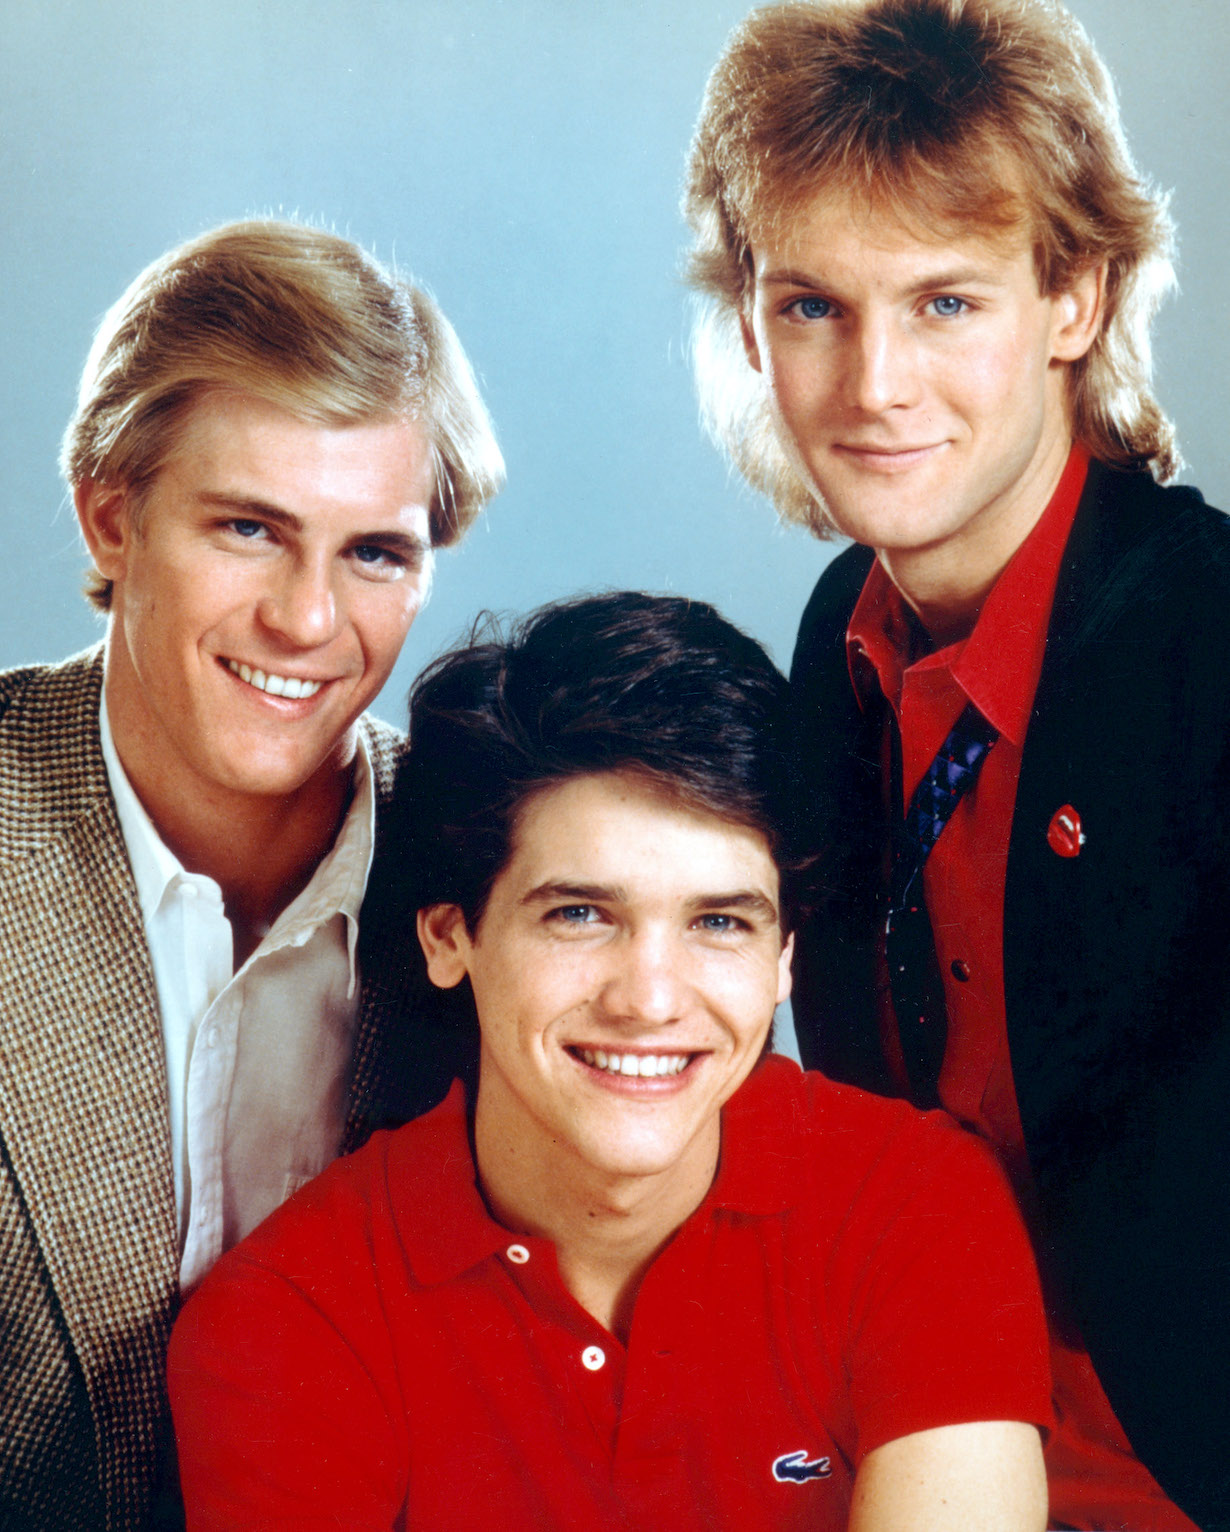 YOUNG AND THE RESTLESS, Steven Ford, Michael Damian, Doug Davidson, 1980s. danny paul andy yr gallery